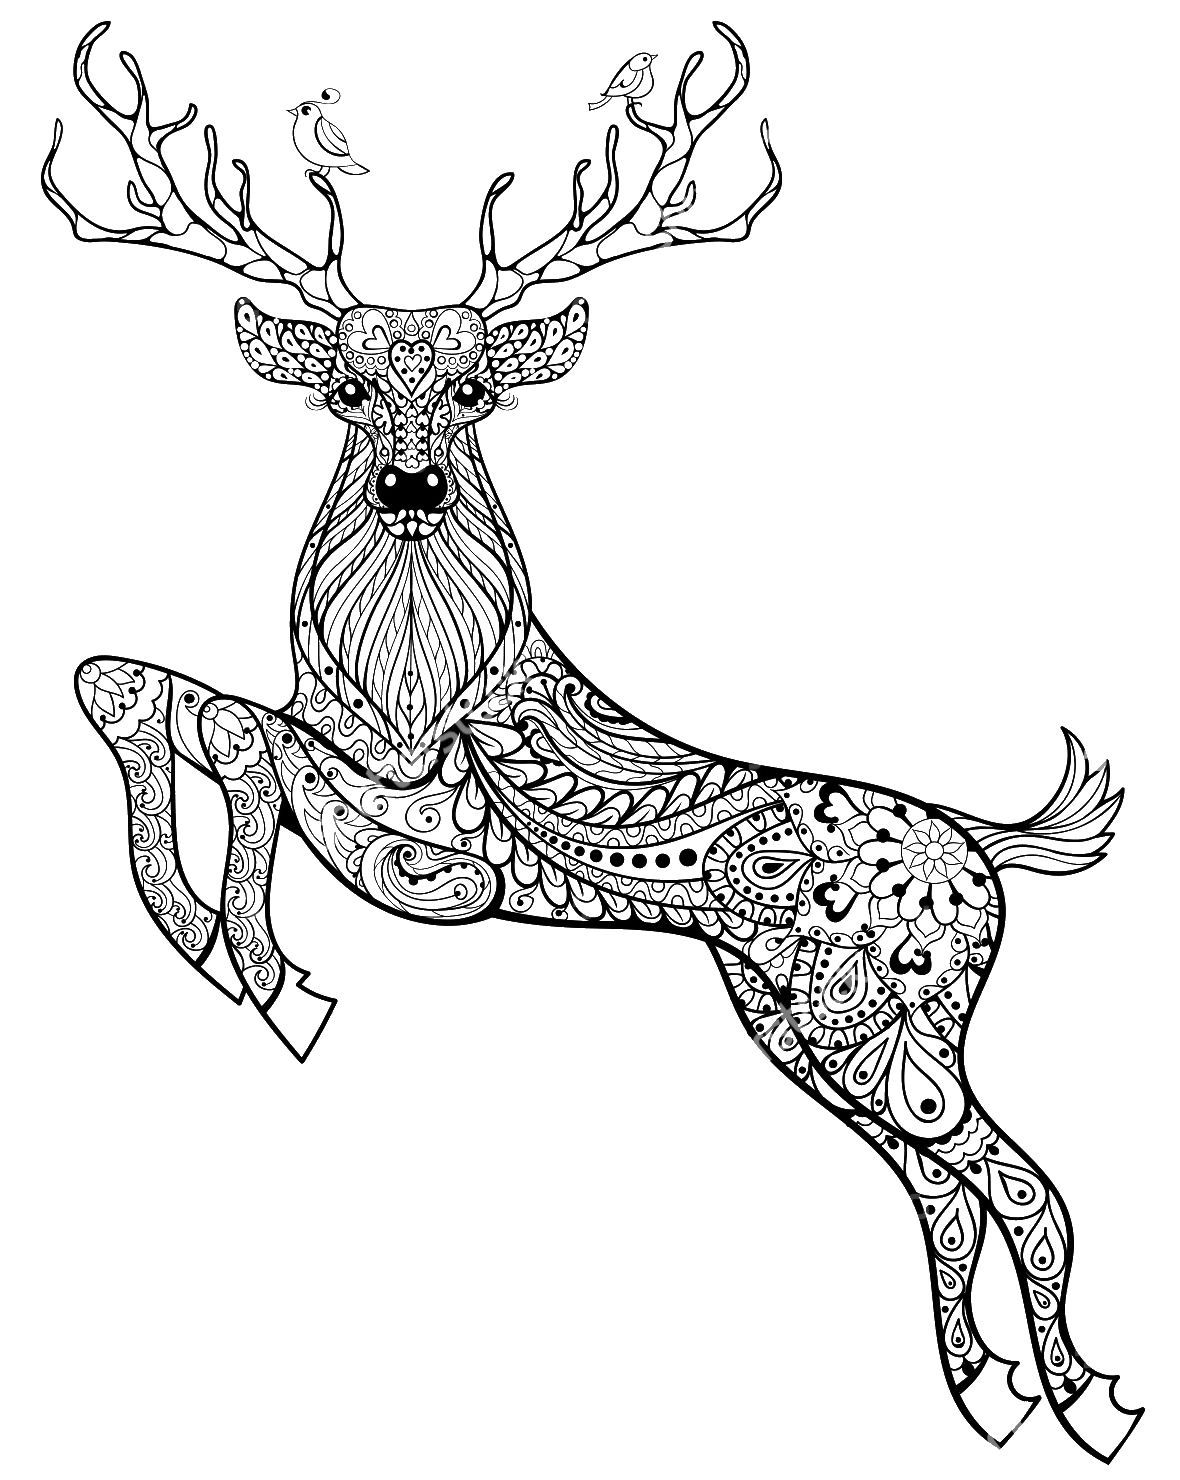 Adult Coloring Pages Deer If Youre Looking For The Top